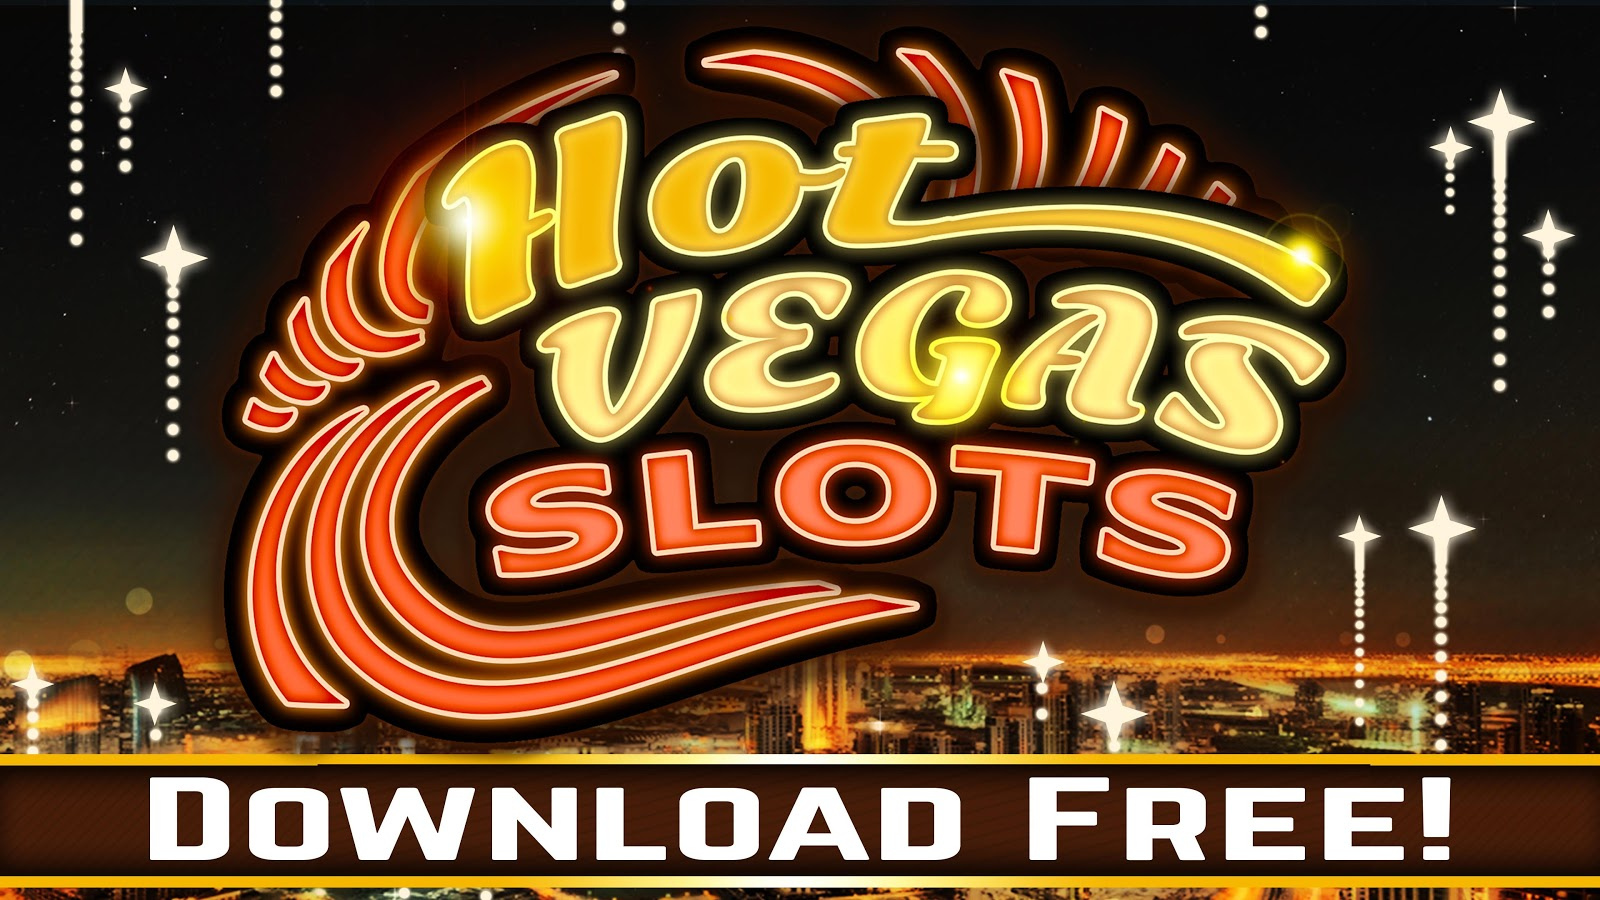 Lost in Africa Slot - Play Yoyougaming Slots Online for Free